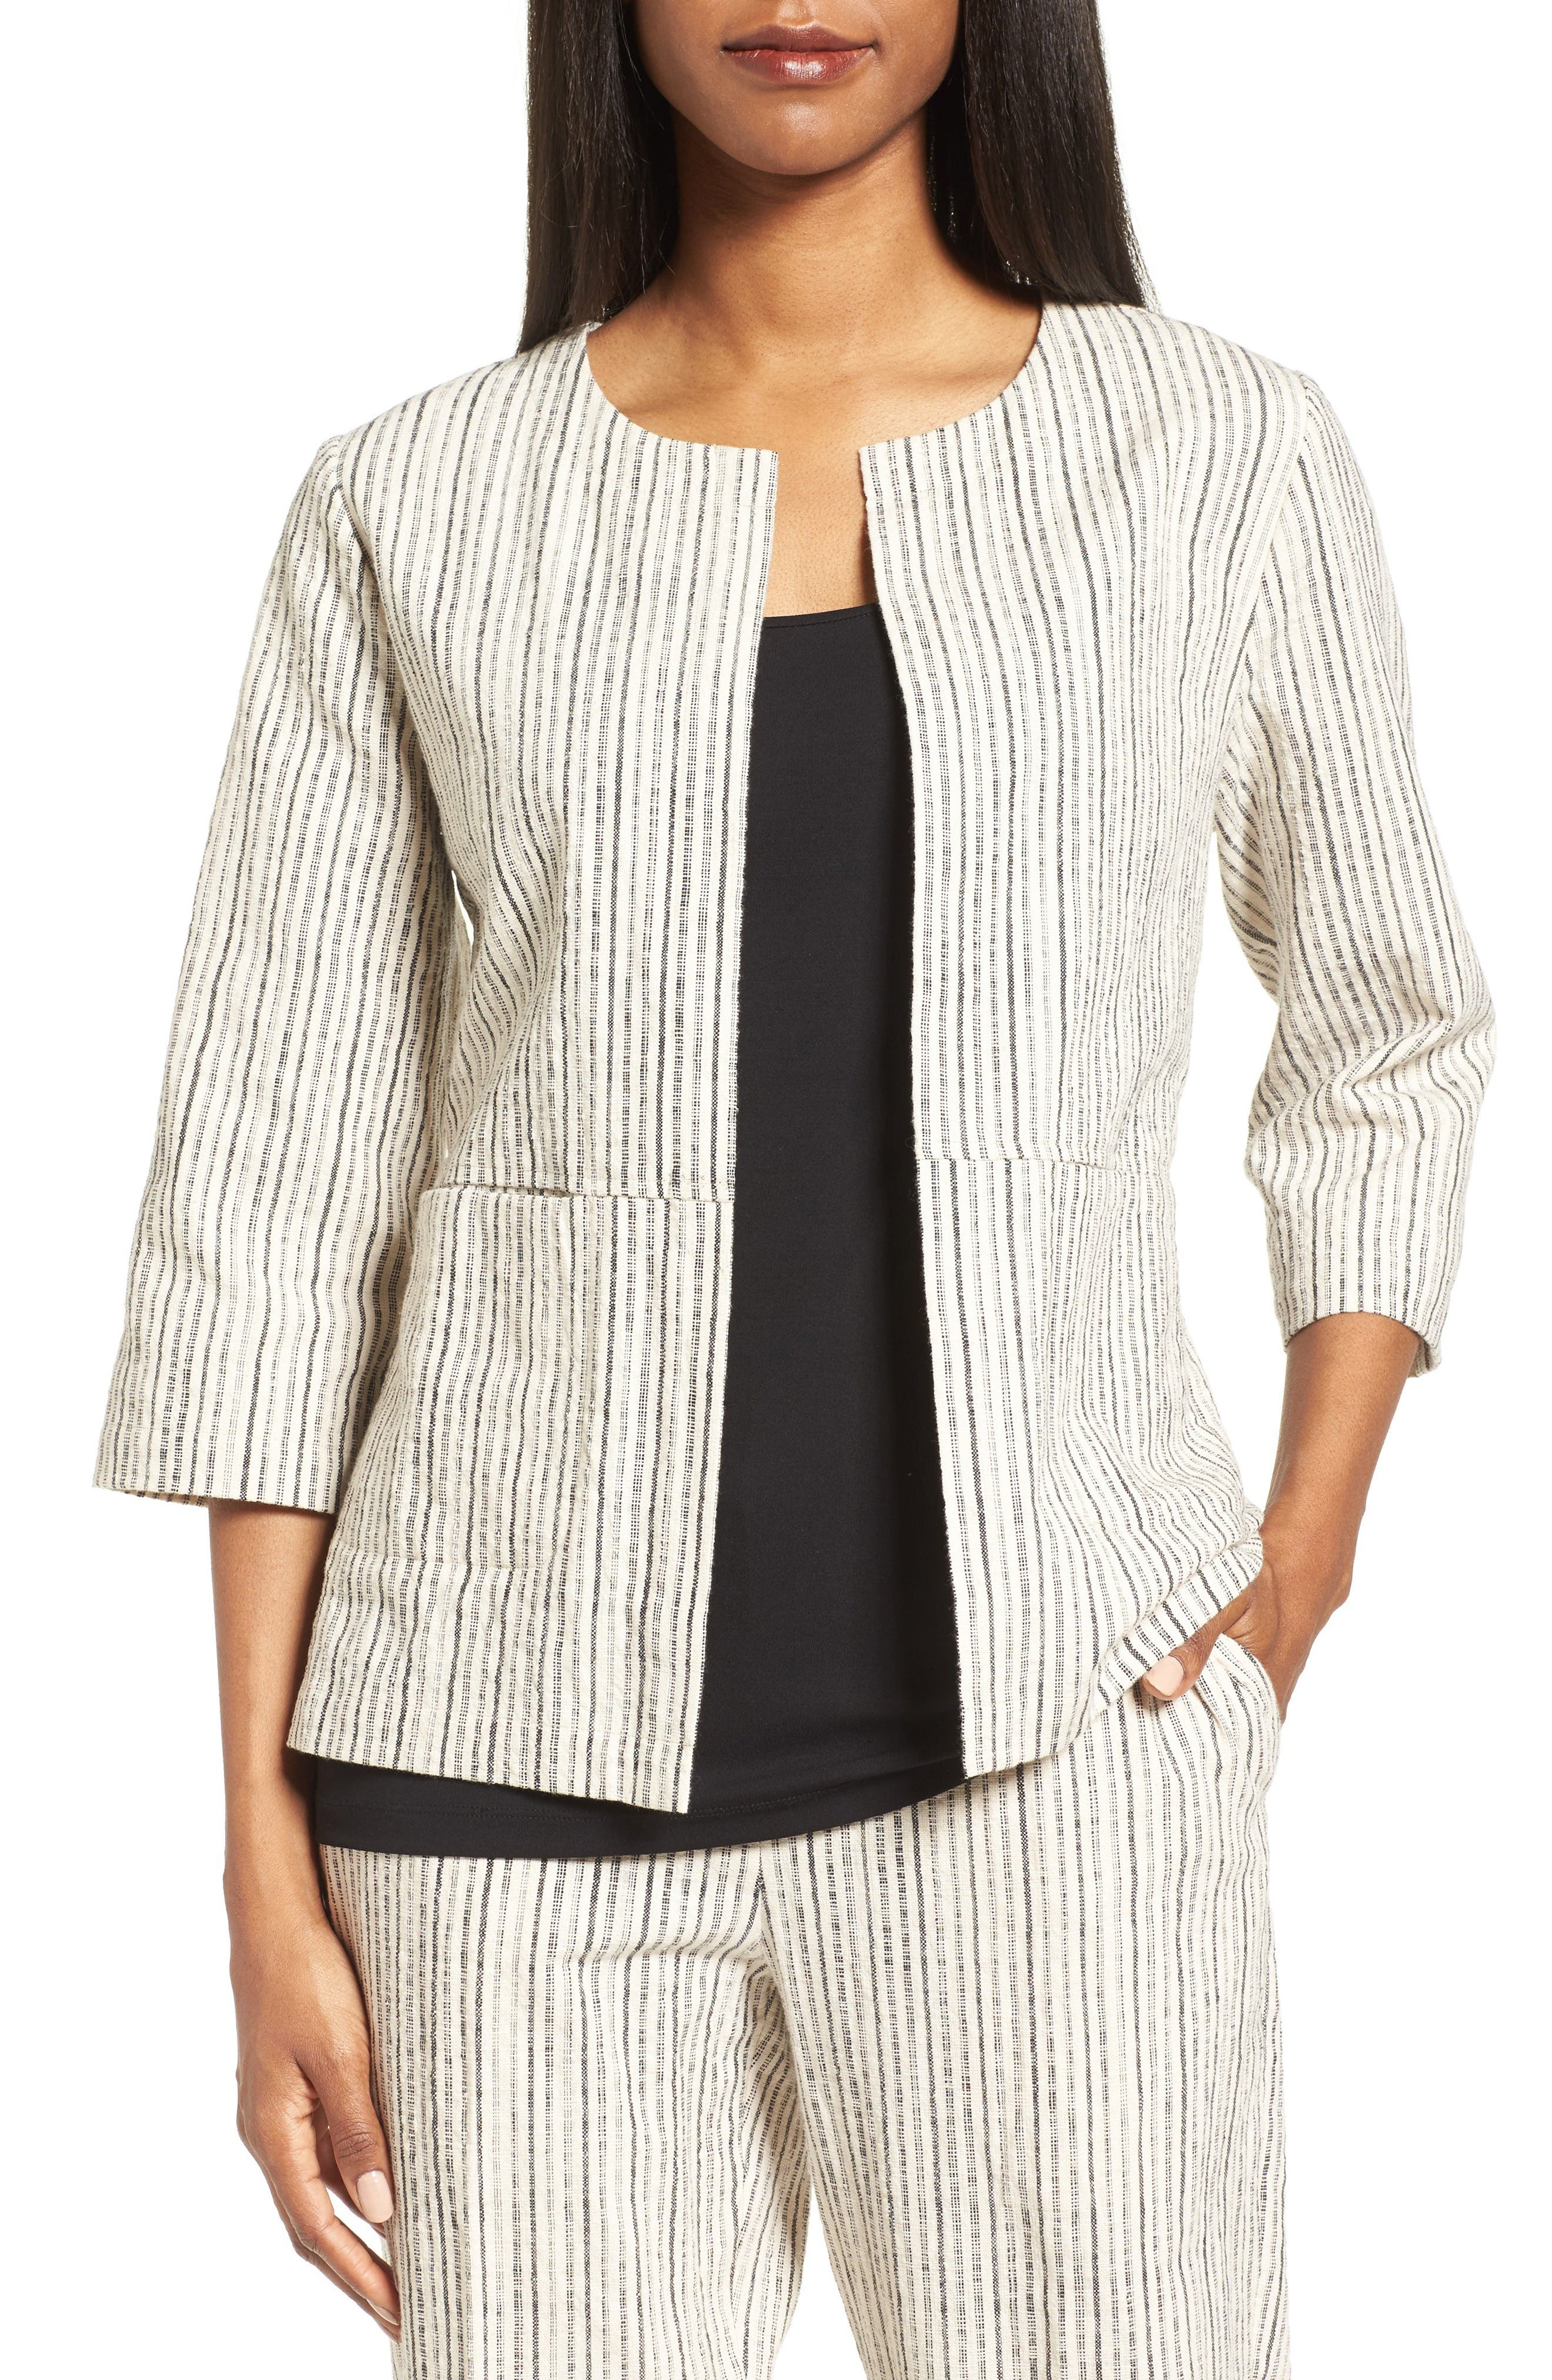 Eileen Fisher Organic Cotton Round Neck Jacket (Nordstrom Exclusive)